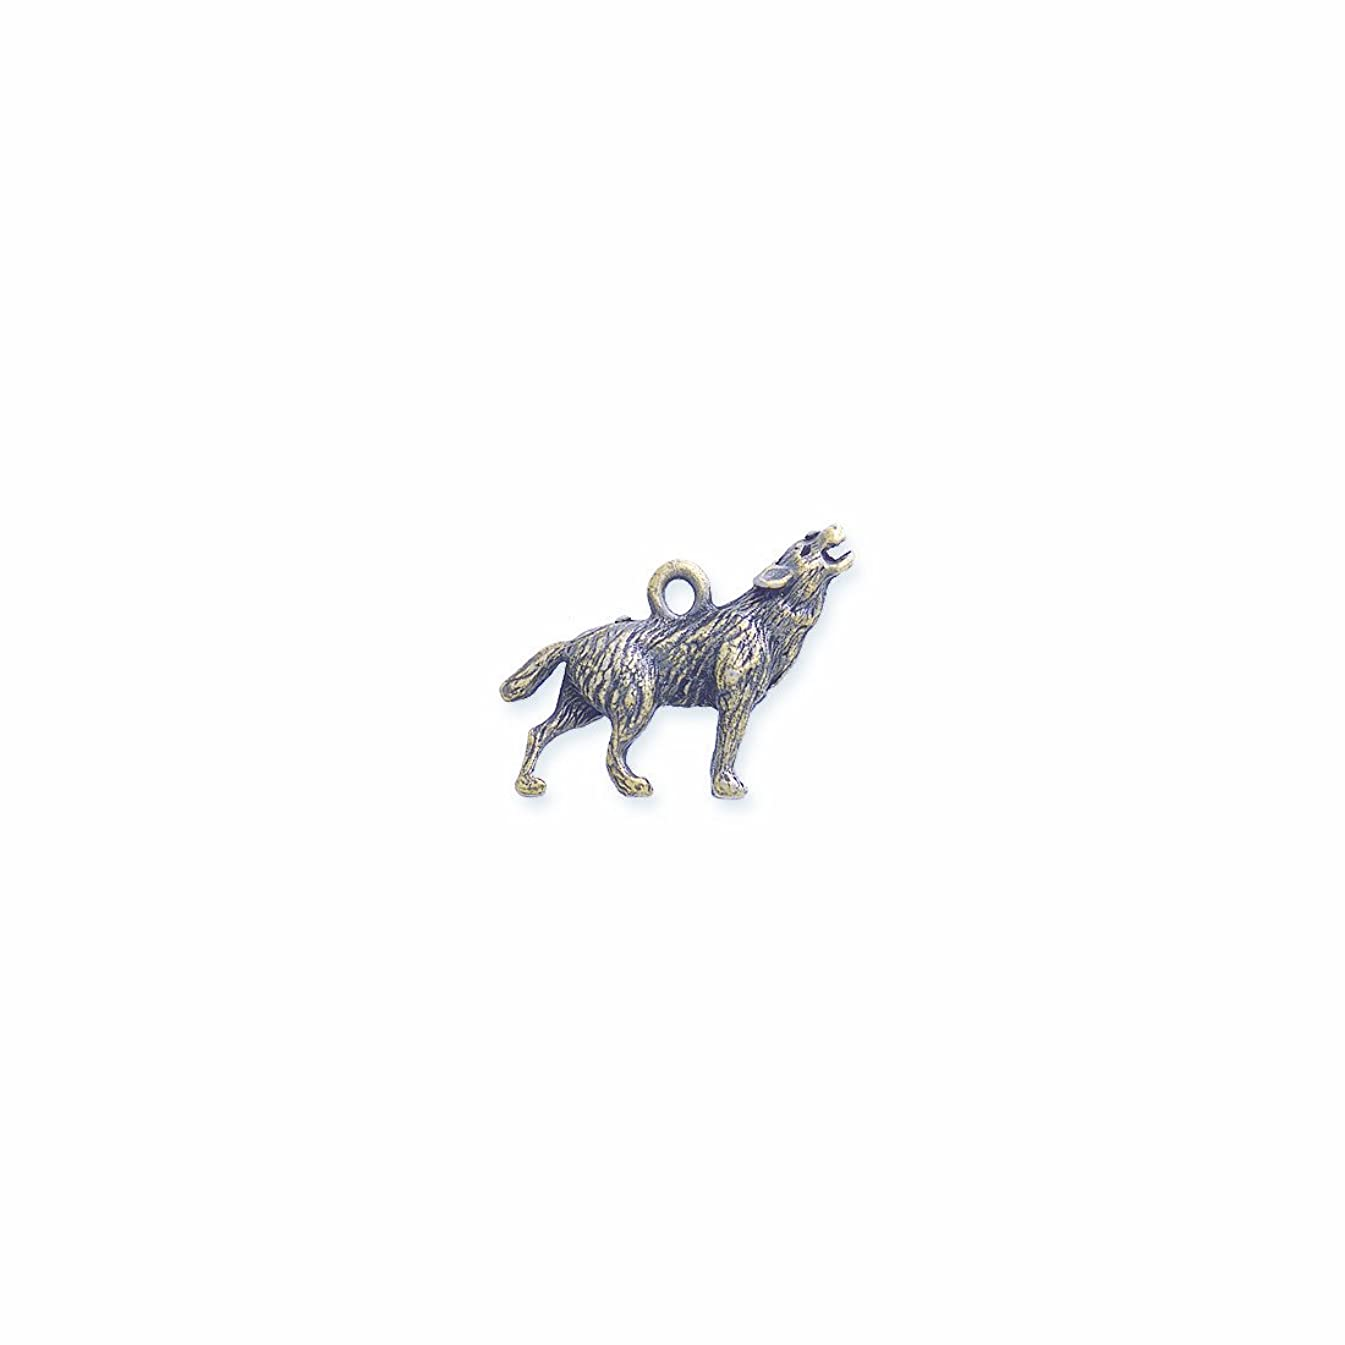 Shipwreck Beads Pewter Coyote Wolf Charm, Antique Brass, 20 by 24mm, 2-Piece